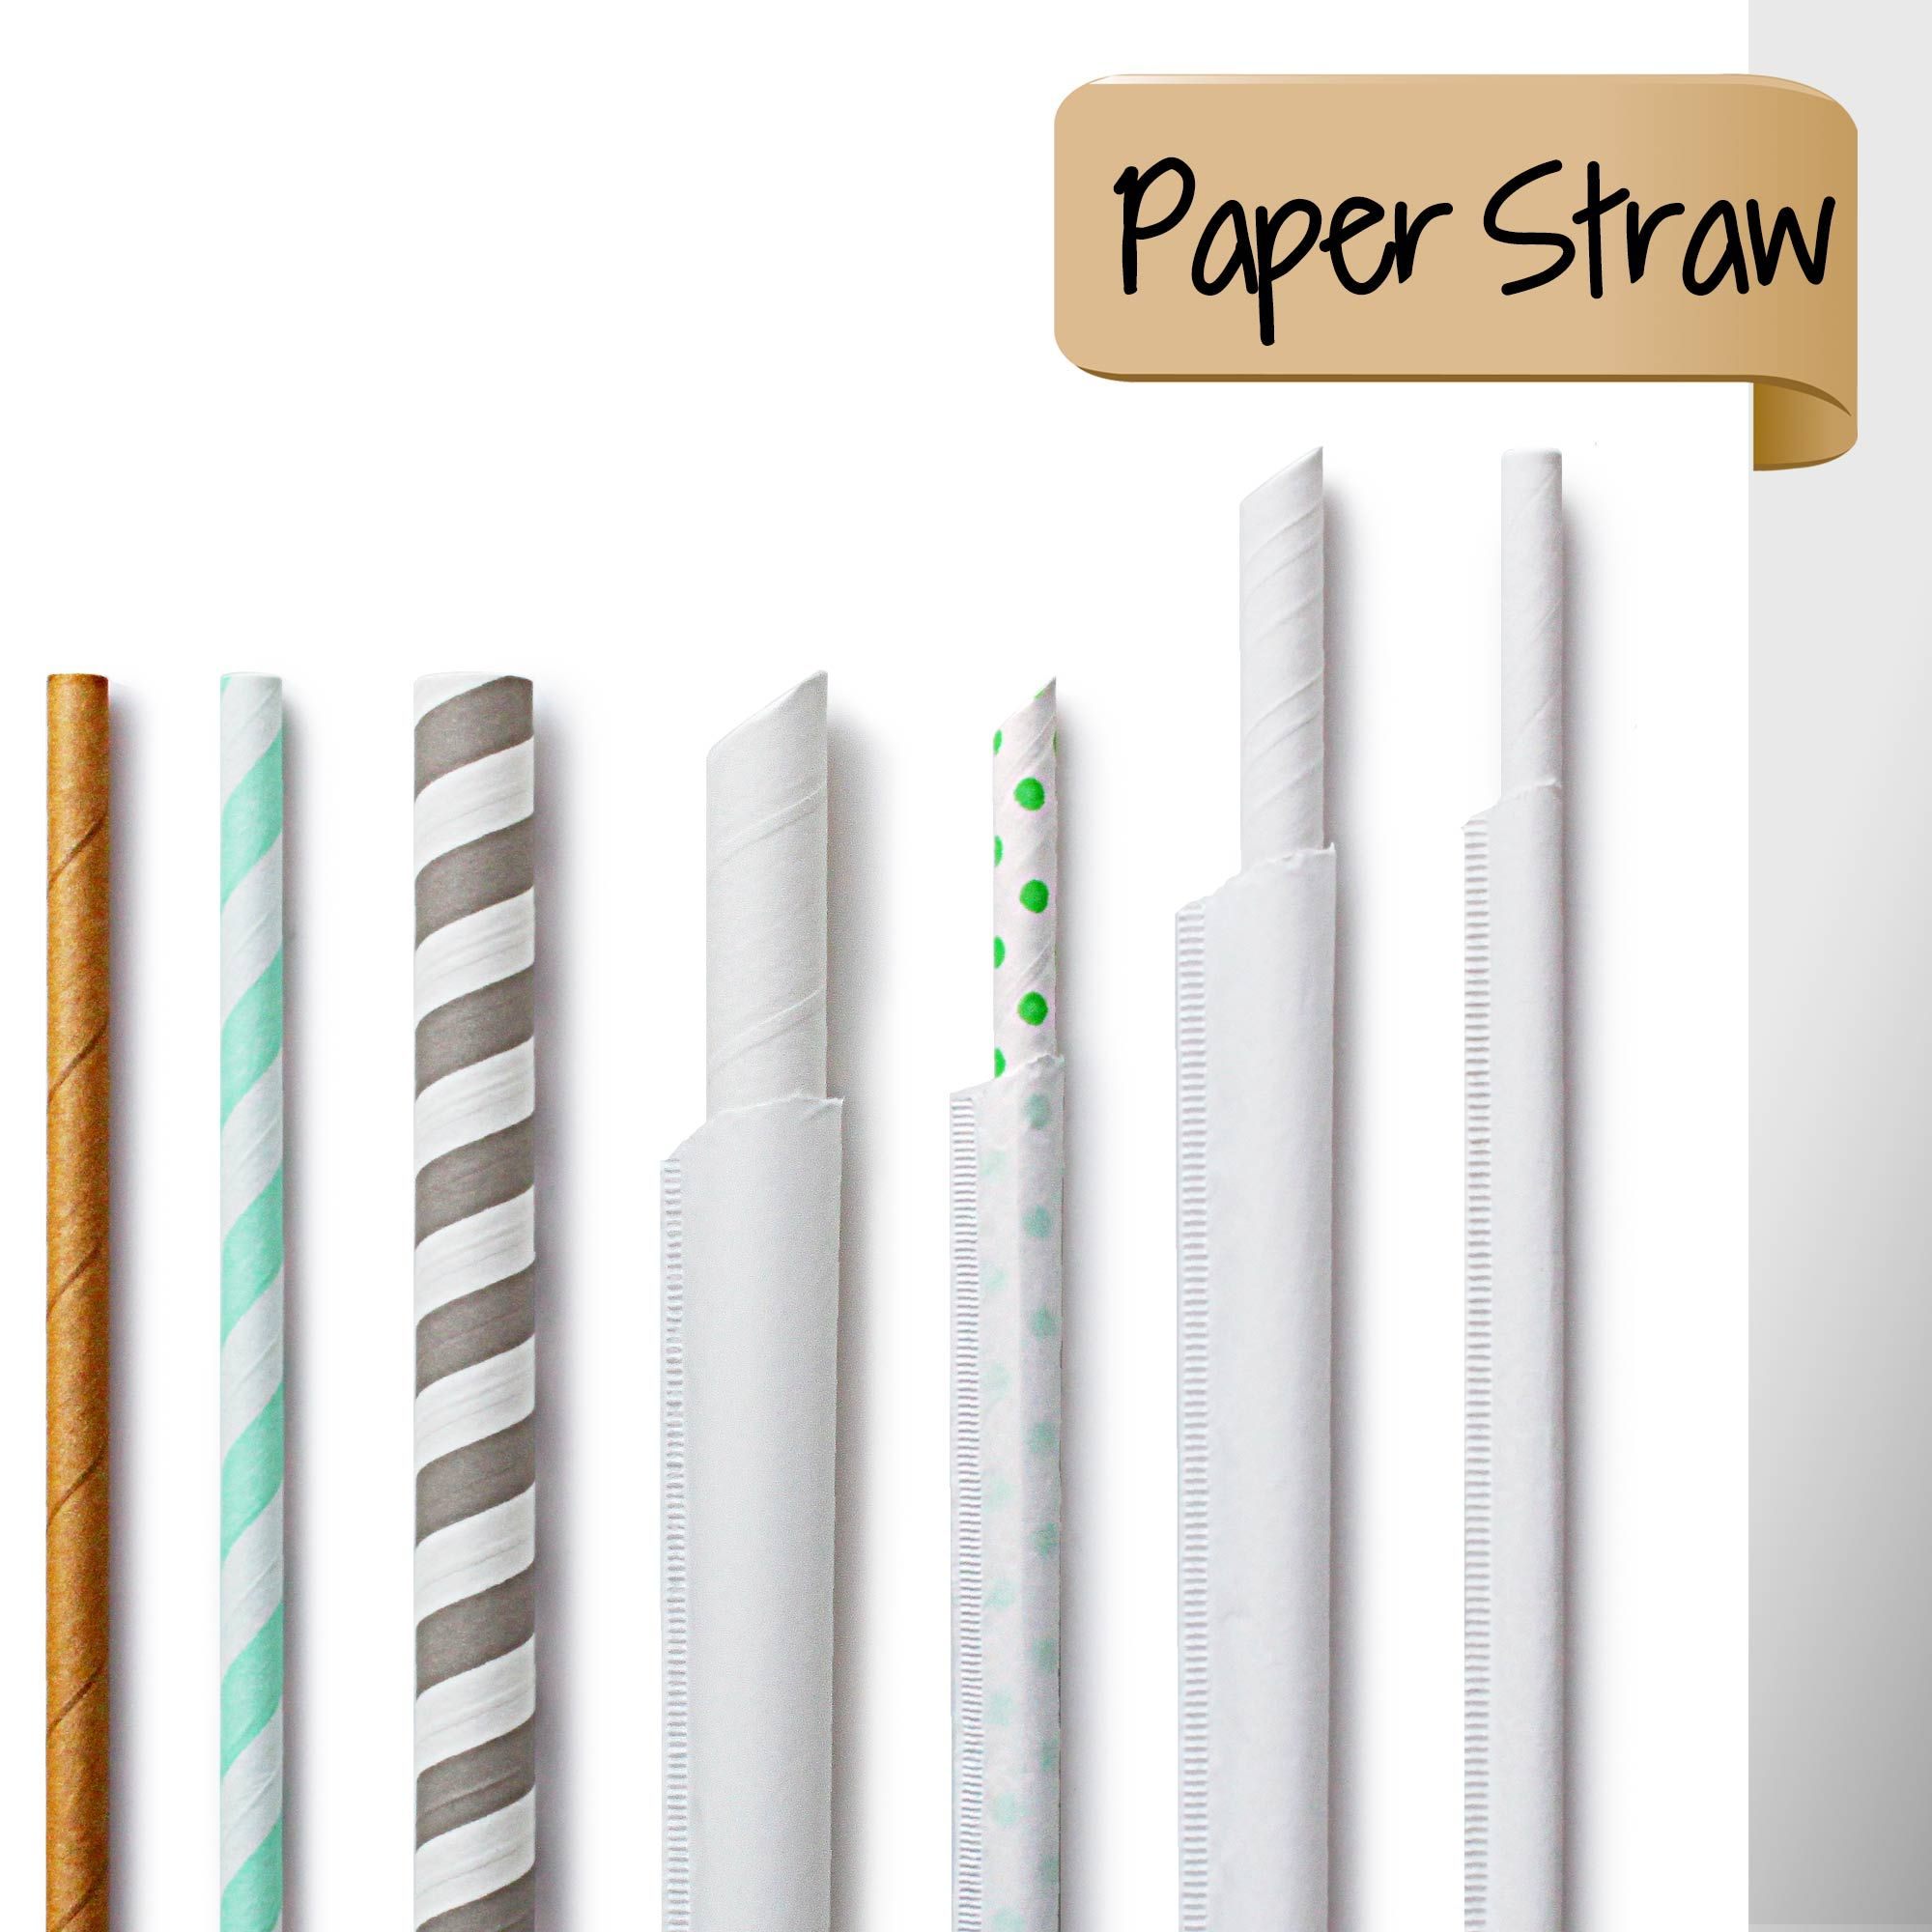 ECO-Friendly Paper Straw - ECO-Friendly Paper Straw